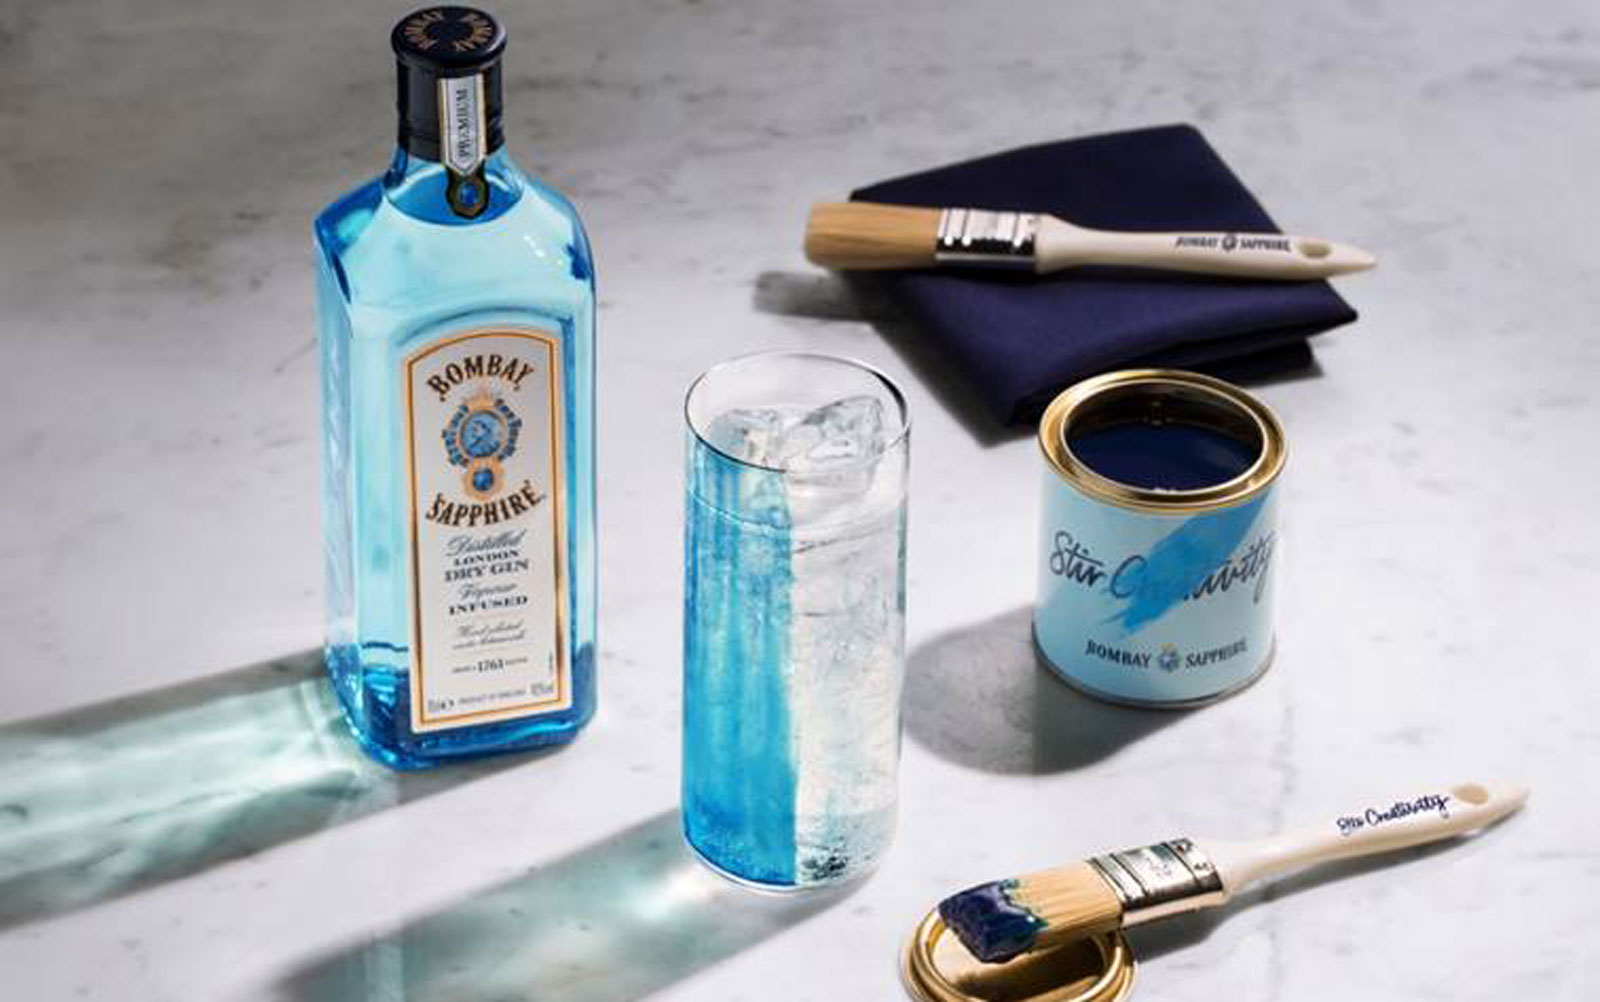 Bombay Sapphire Launches Online Platform For Diy Projects And Mixology Classes Amid Coronavirus Quarantine photo